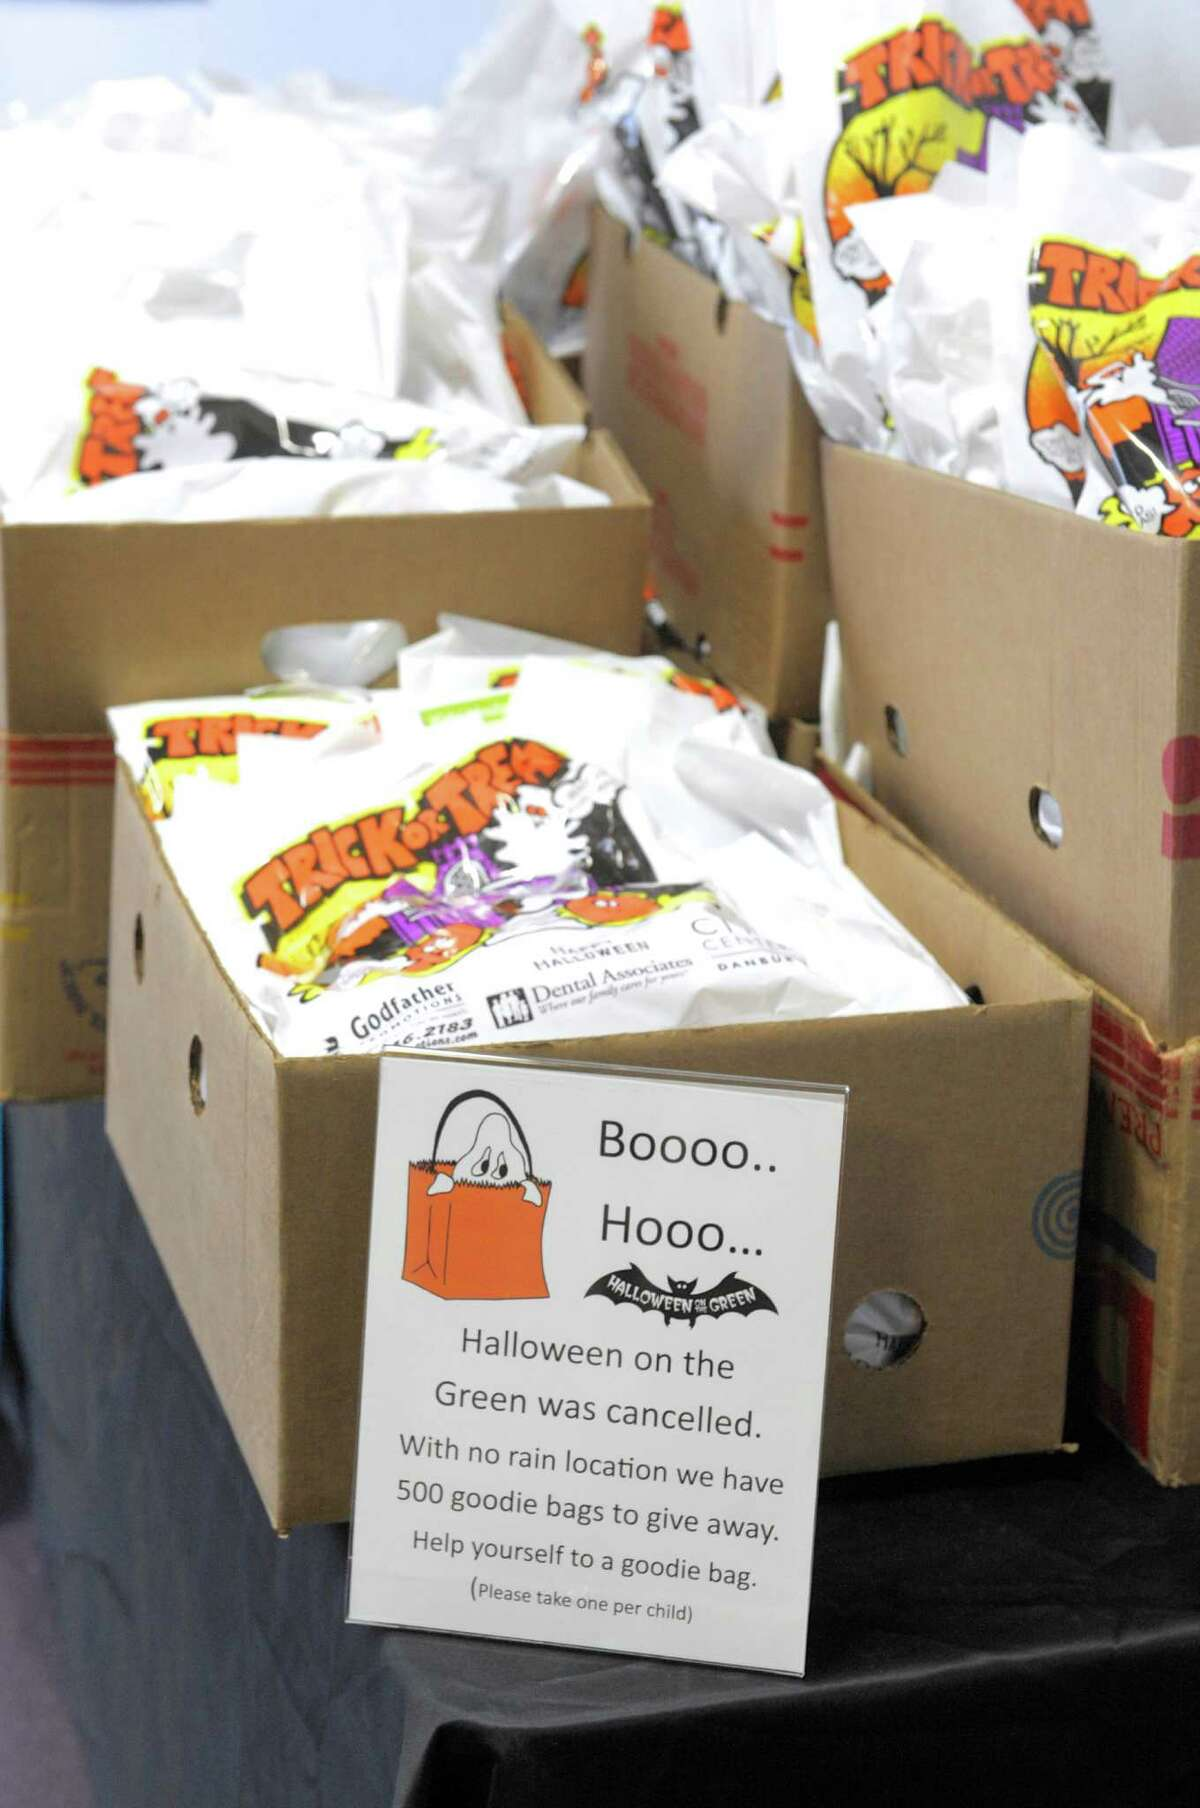 """CityCenter Danbury """"Halloween on the Green"""", scheduled for Saturday, was cancelled because of the weather. The goodie bags to be handed out were available to be pickup up in the Danbury Ice Arena, Danbury, Conn, on Saturday, November 1, 2014."""